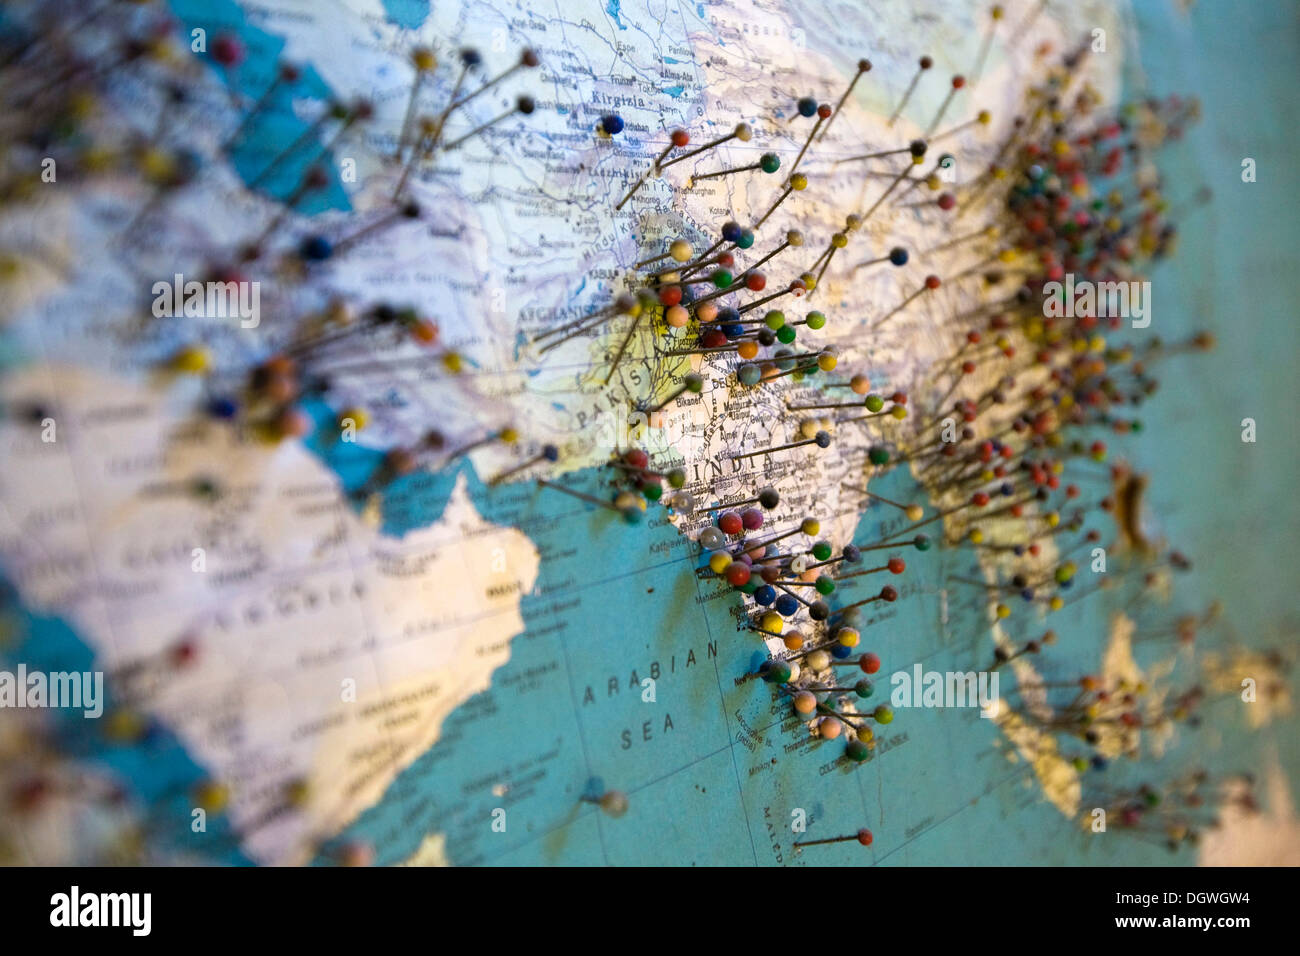 Hamburg germany world map on stock photos hamburg germany world visitors of the seemannsclub duckdalben sailors club have marked their home towns on a gumiabroncs Image collections